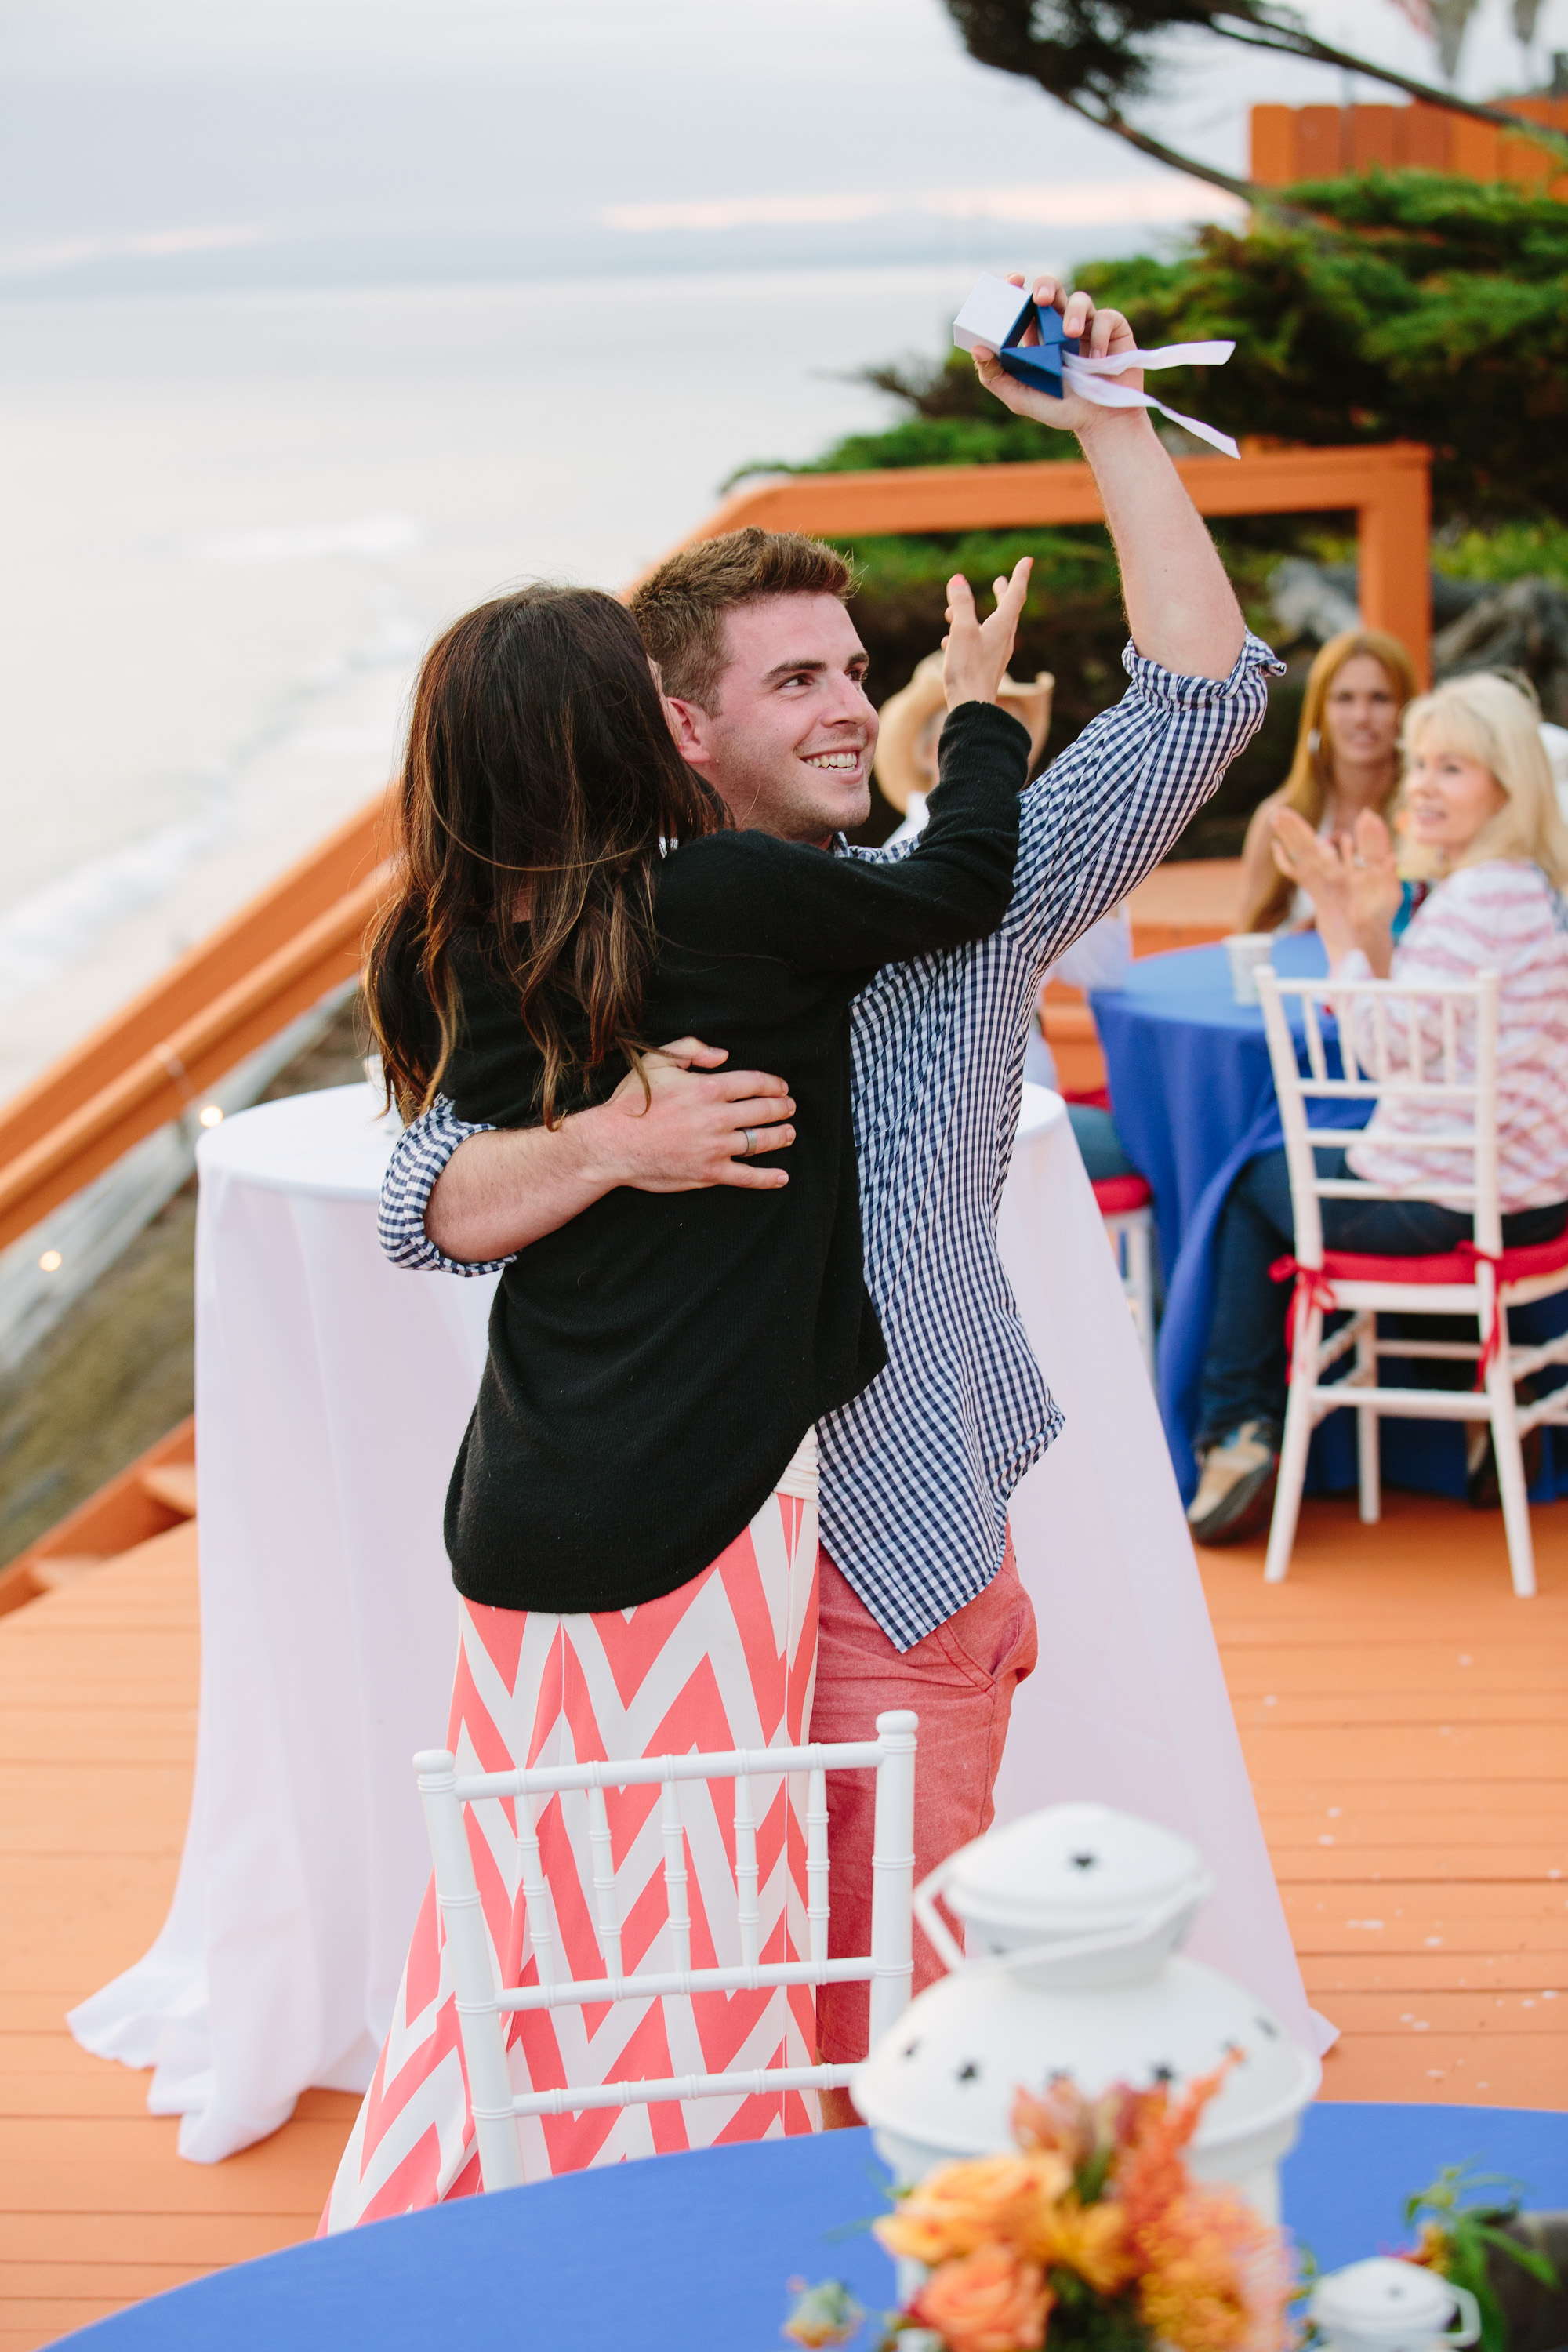 Surprise Marriage Proposal on Fourth of July029